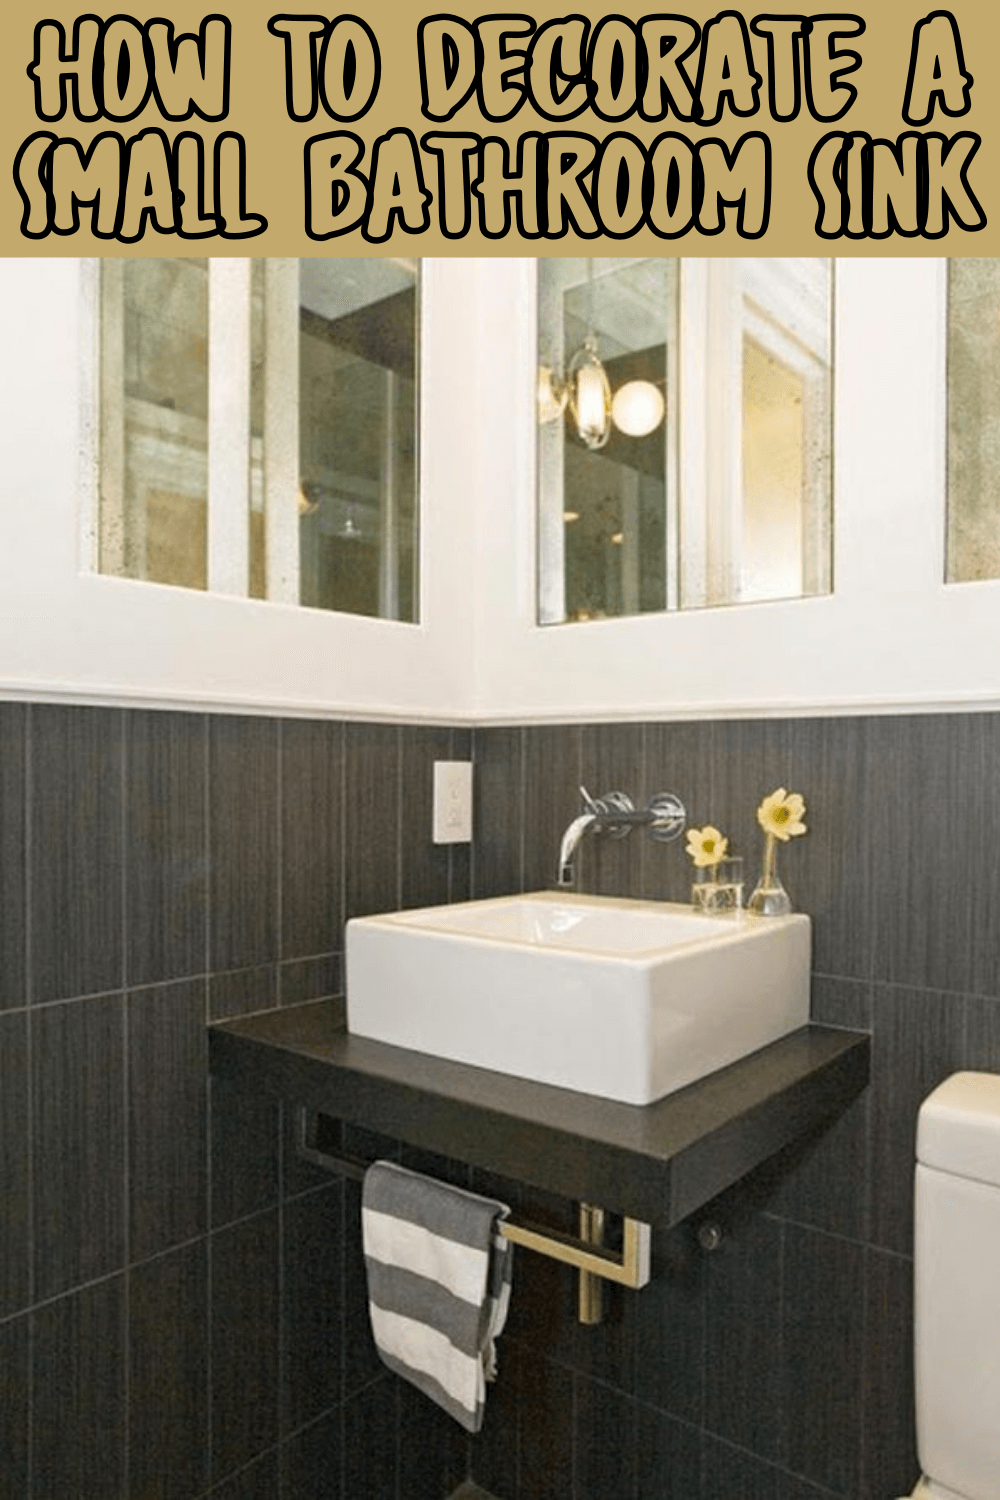 HOW TO DECORATE A SMALL BATHROOM SINK